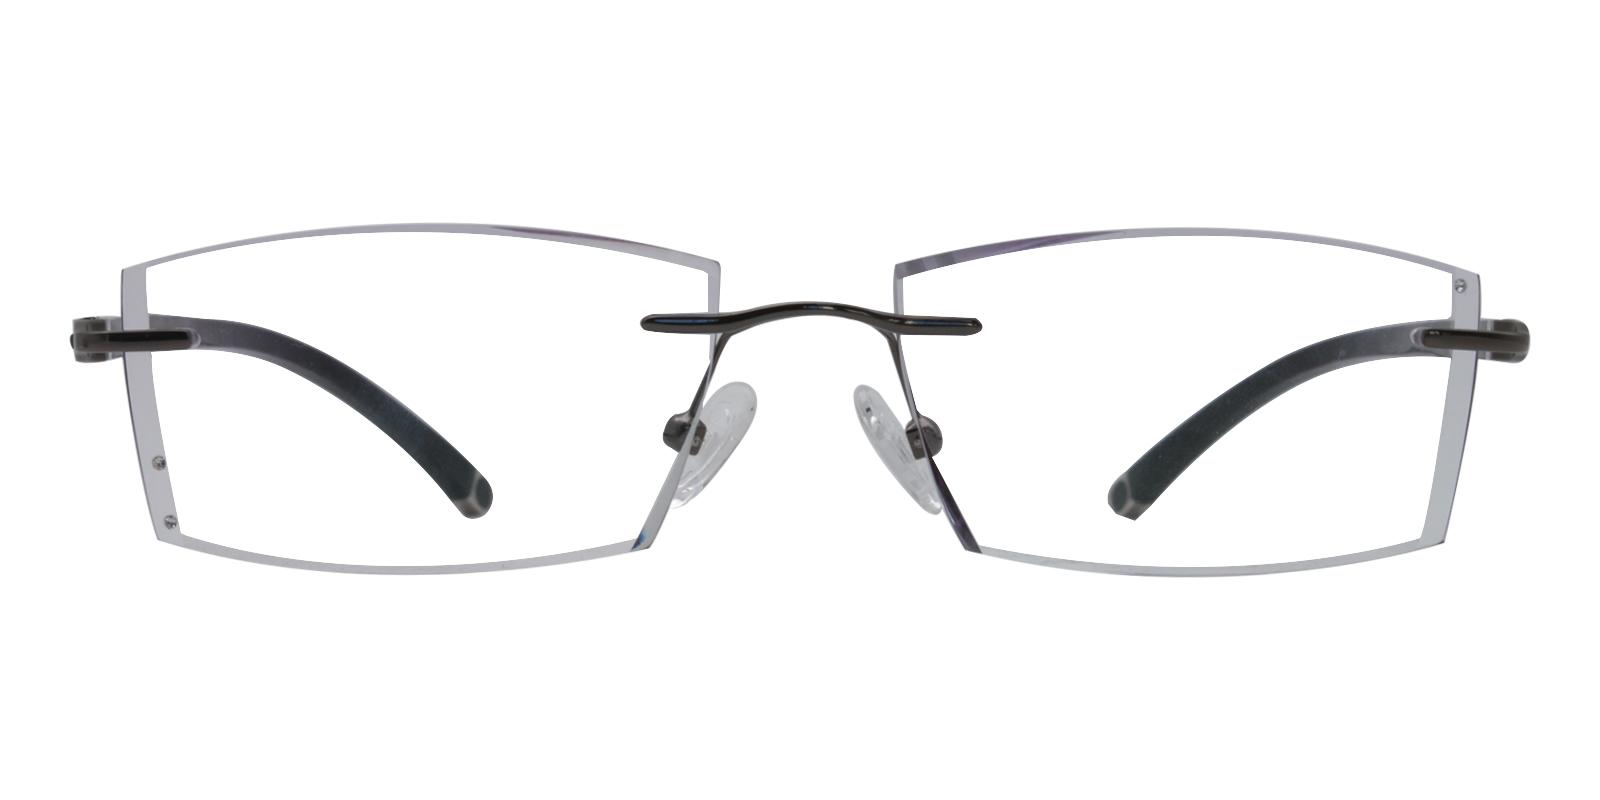 John Gray Titanium Eyeglasses , NosePads Frames from ABBE Glasses